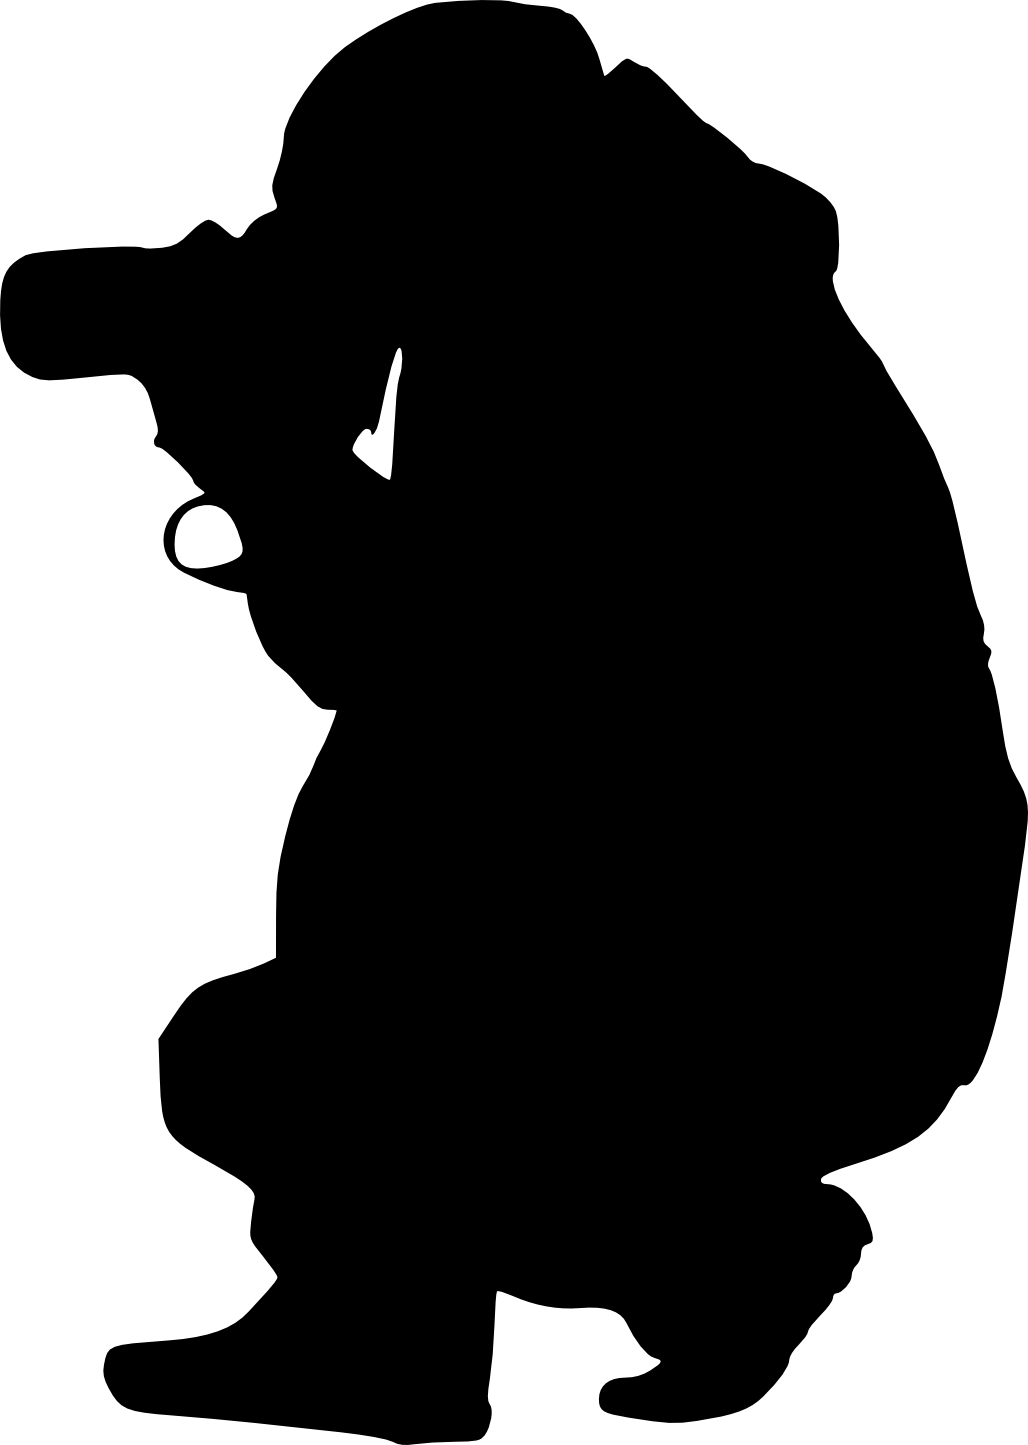 Download free photography camera logo png png with transparent background. 13 Photographer with Camera Silhouette (PNG Transparent ...